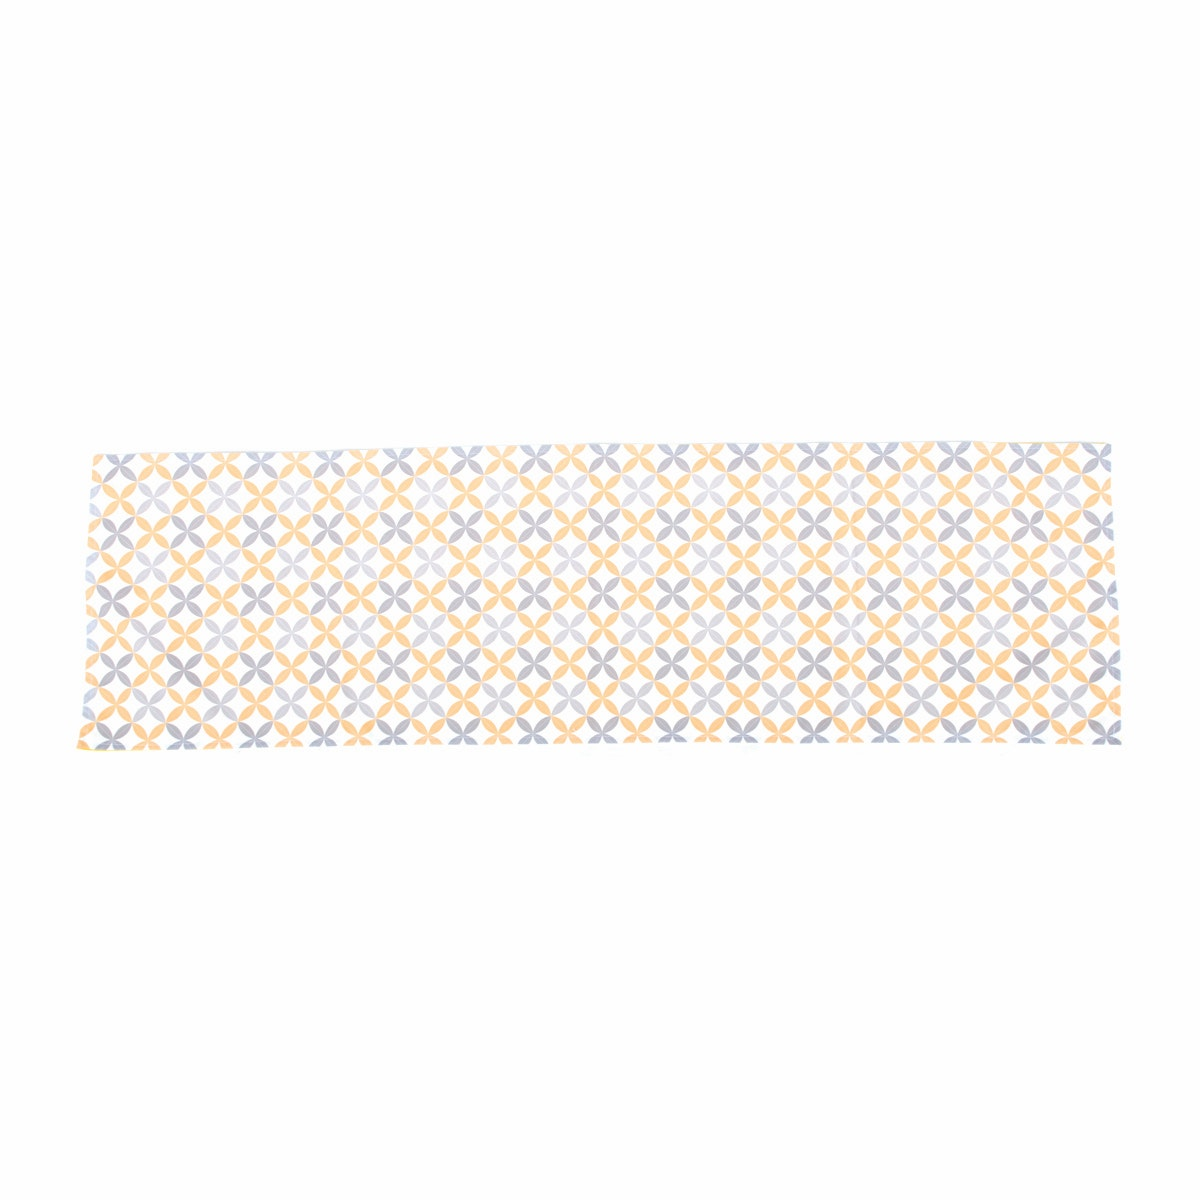 Glerry Home Decor Sunny Hues Table Runner 250x30cm